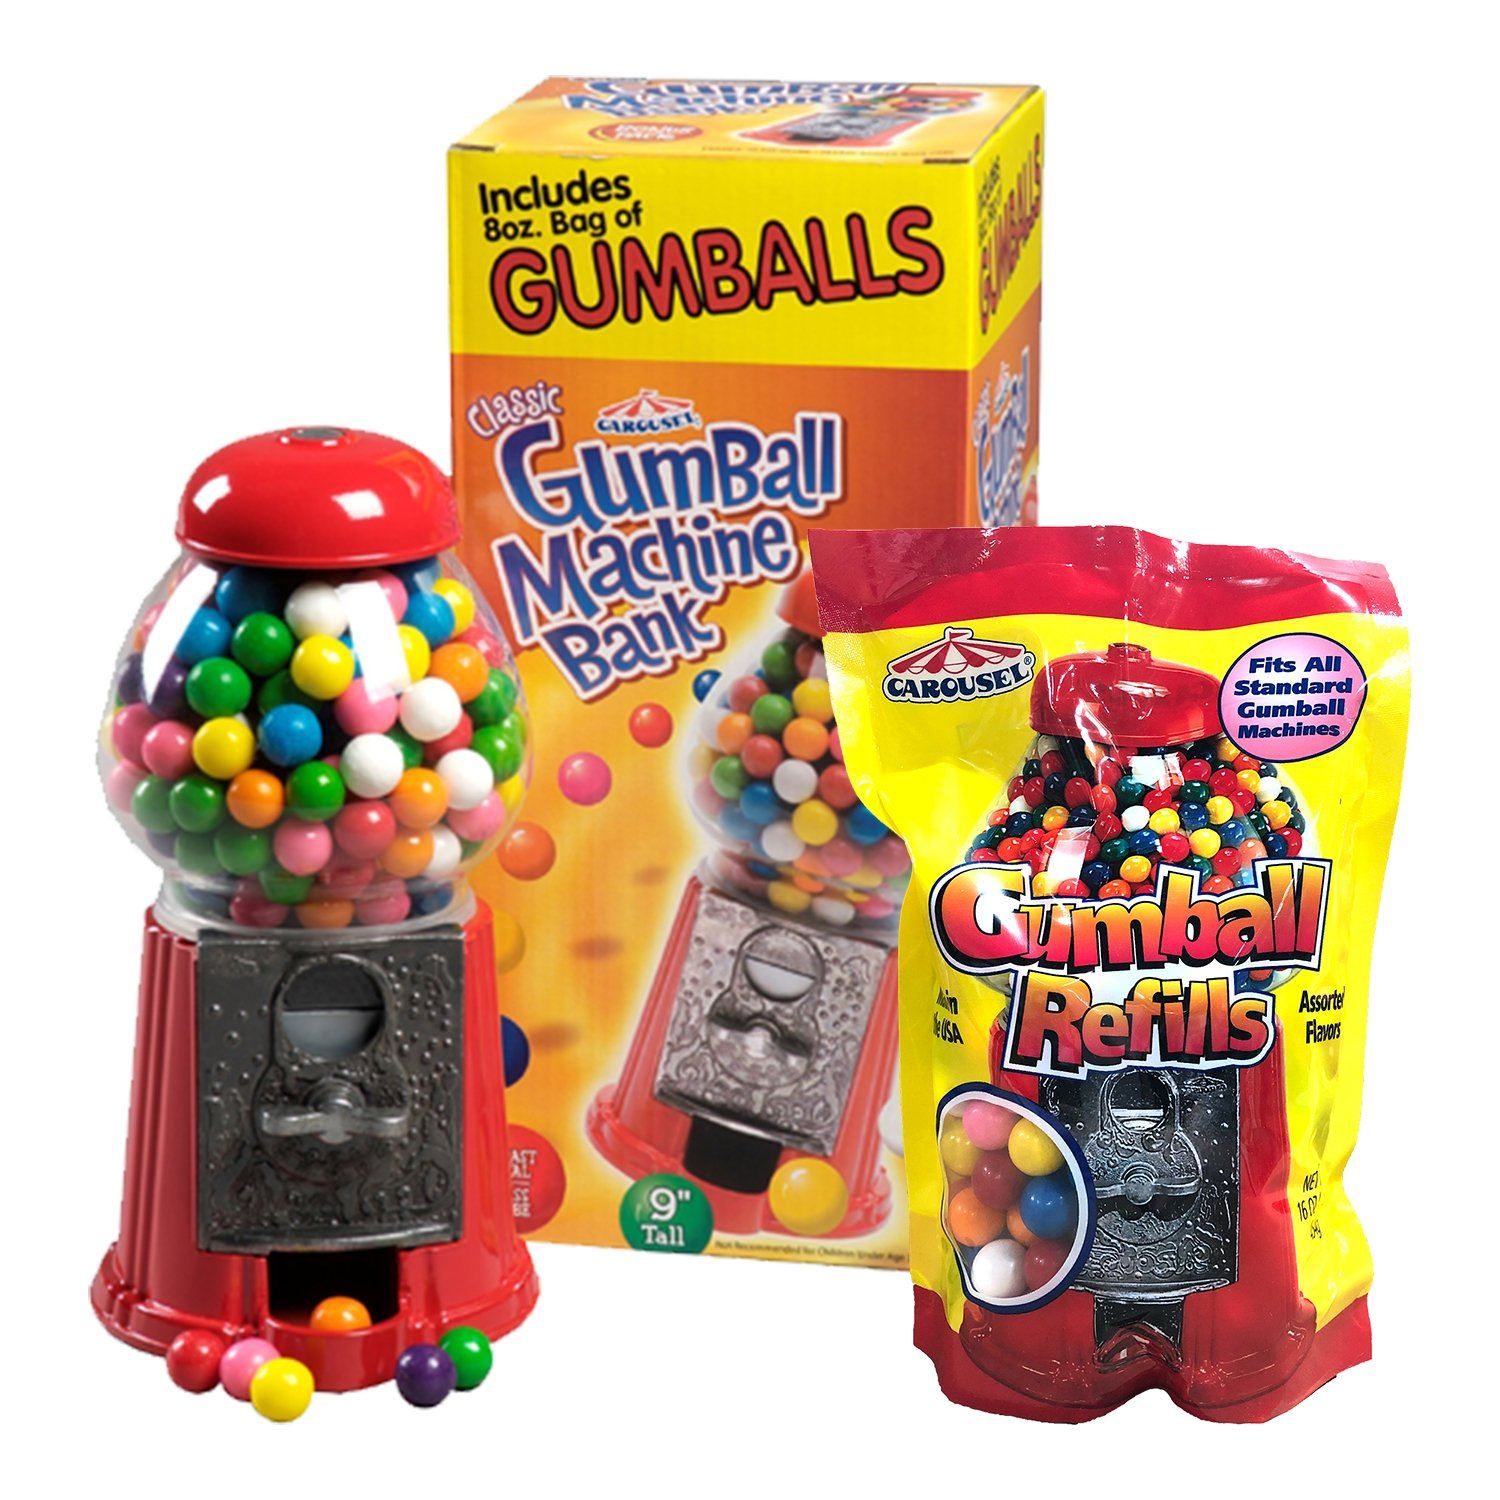 Carousel Gumball Machines and Refills Ford Gum & Machine